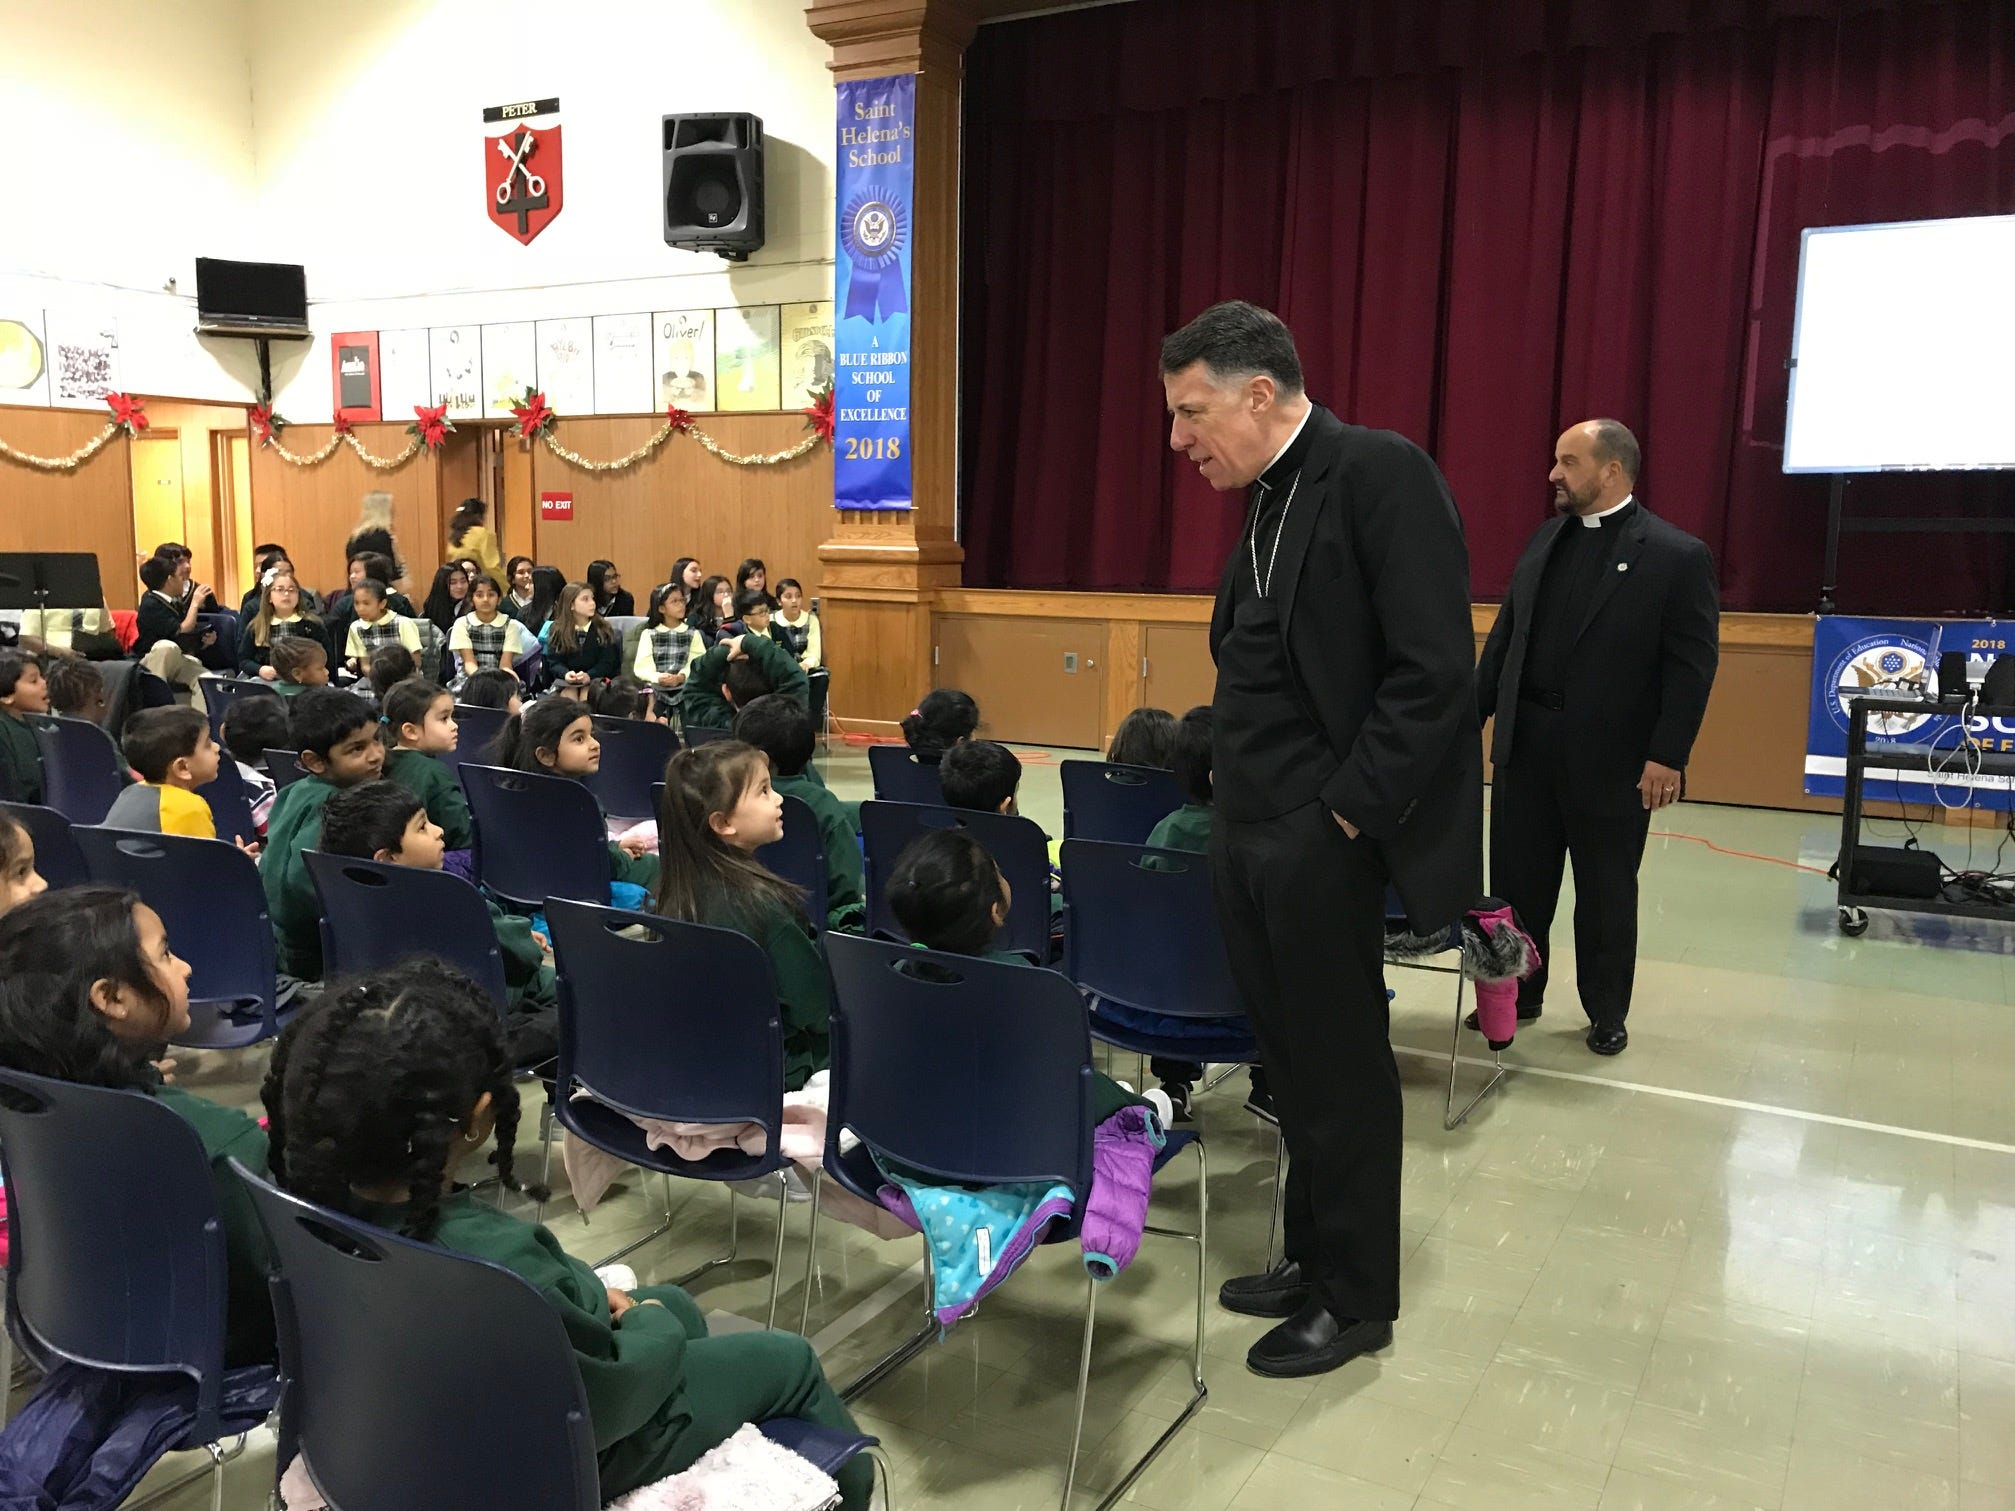 Diocese of Metuchen Bishop James Checchio chats with students at Saint HelenaSchool in Edison during the school's celebration of its 2018 NationalBlue Ribbon School award.